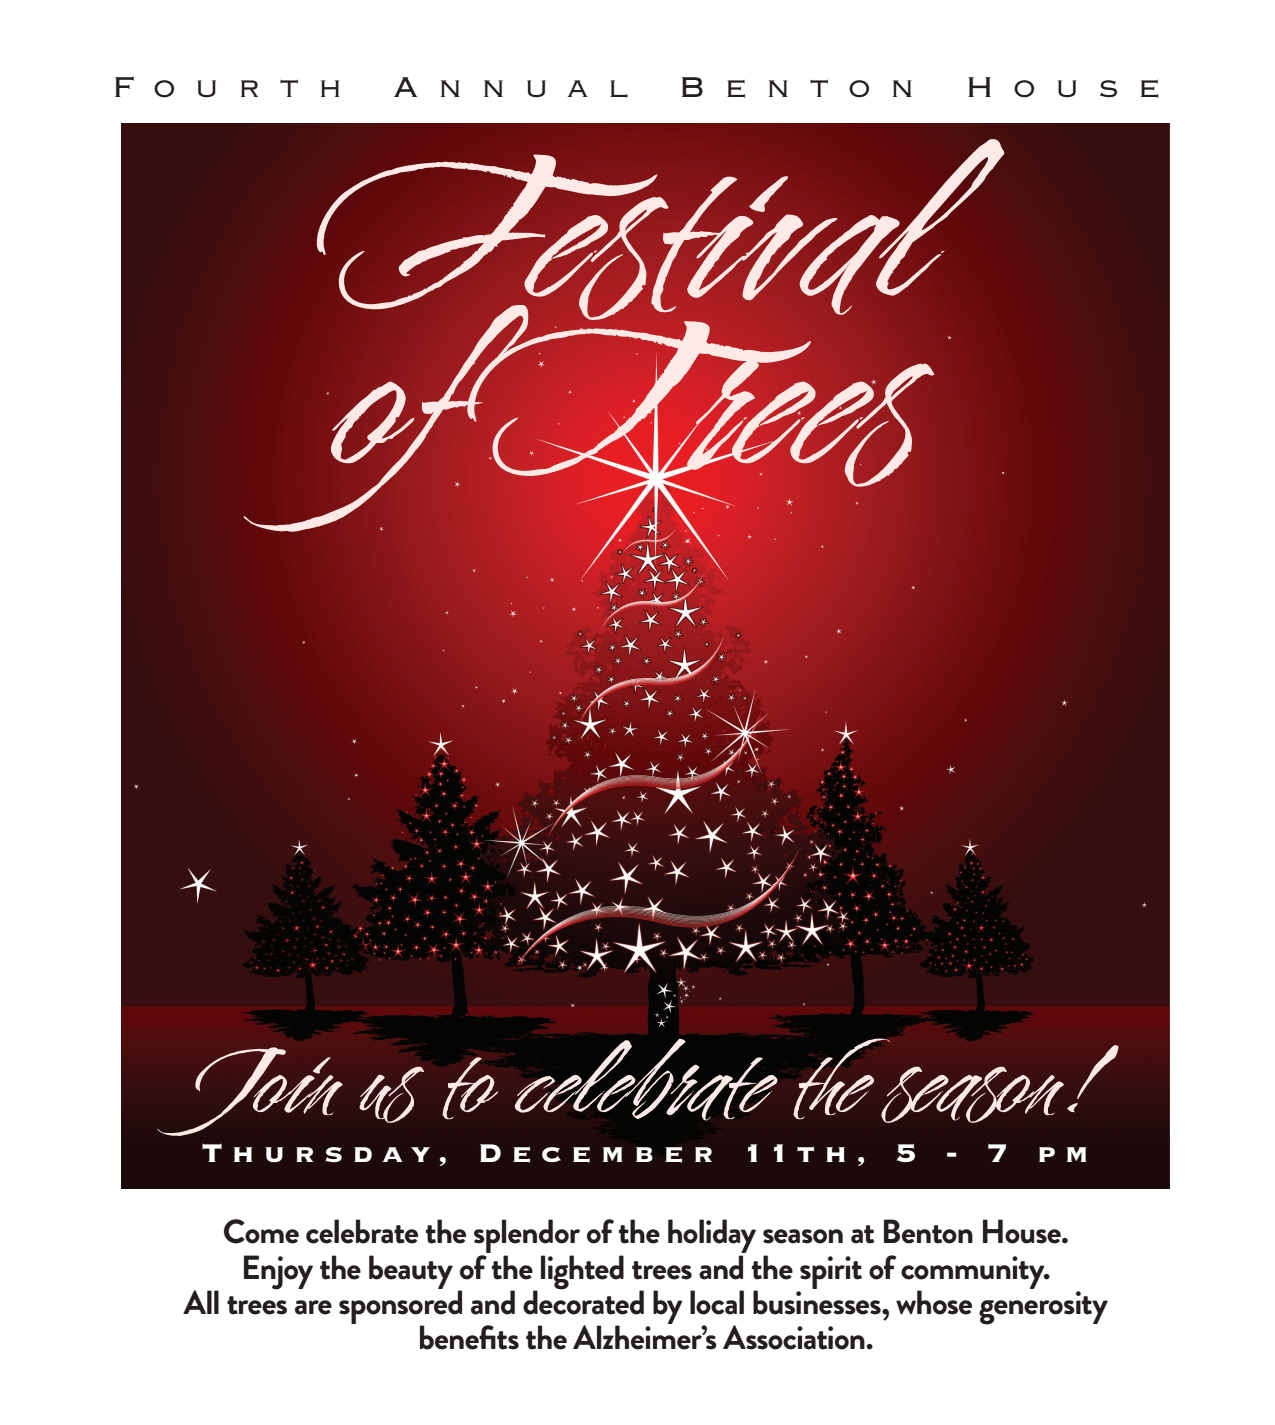 Festival of Trees - activities at Benton House of Raymore in Raymore, MO